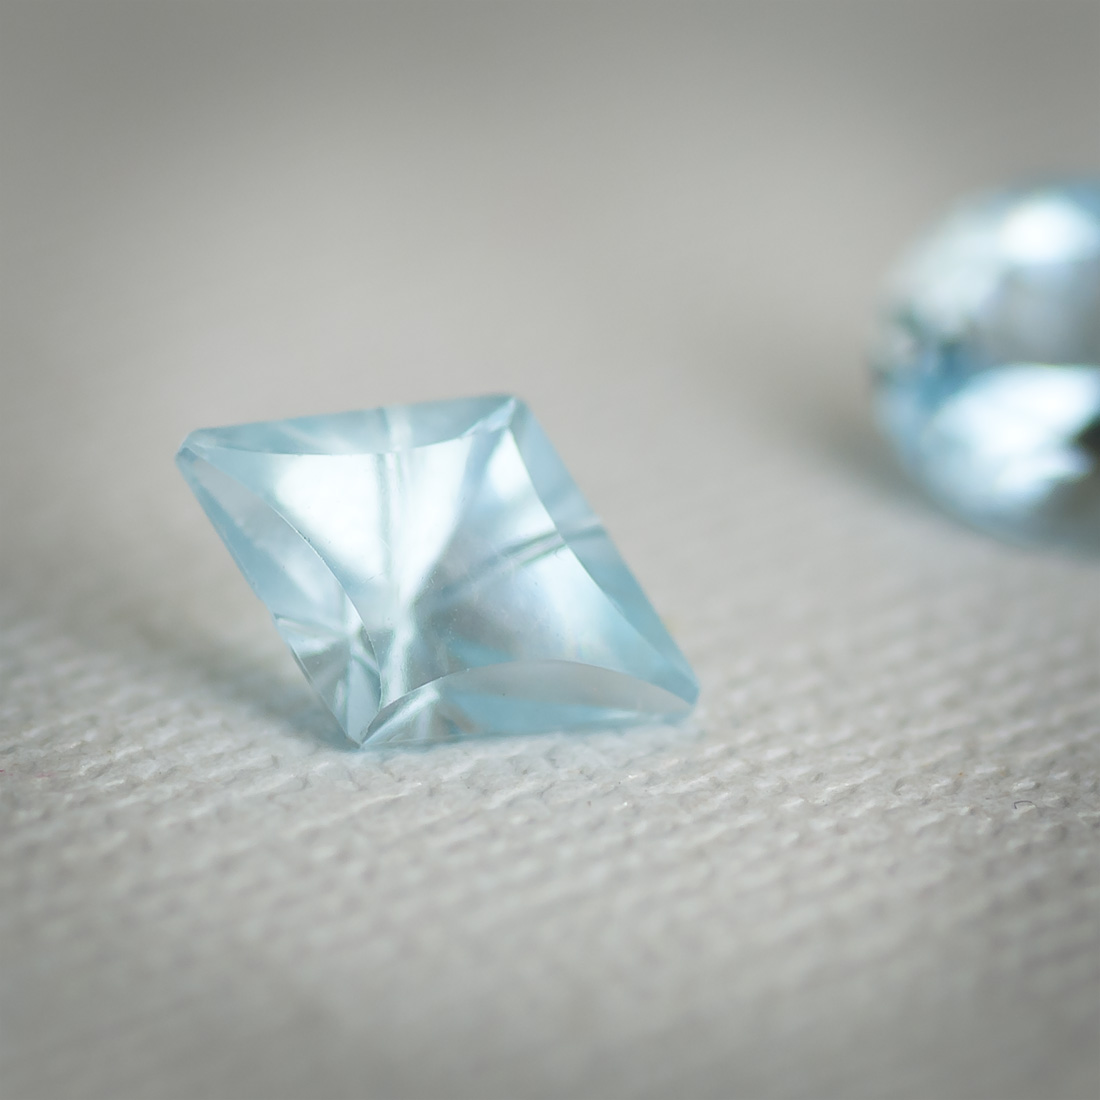 Loose fantasy cut aquamarine